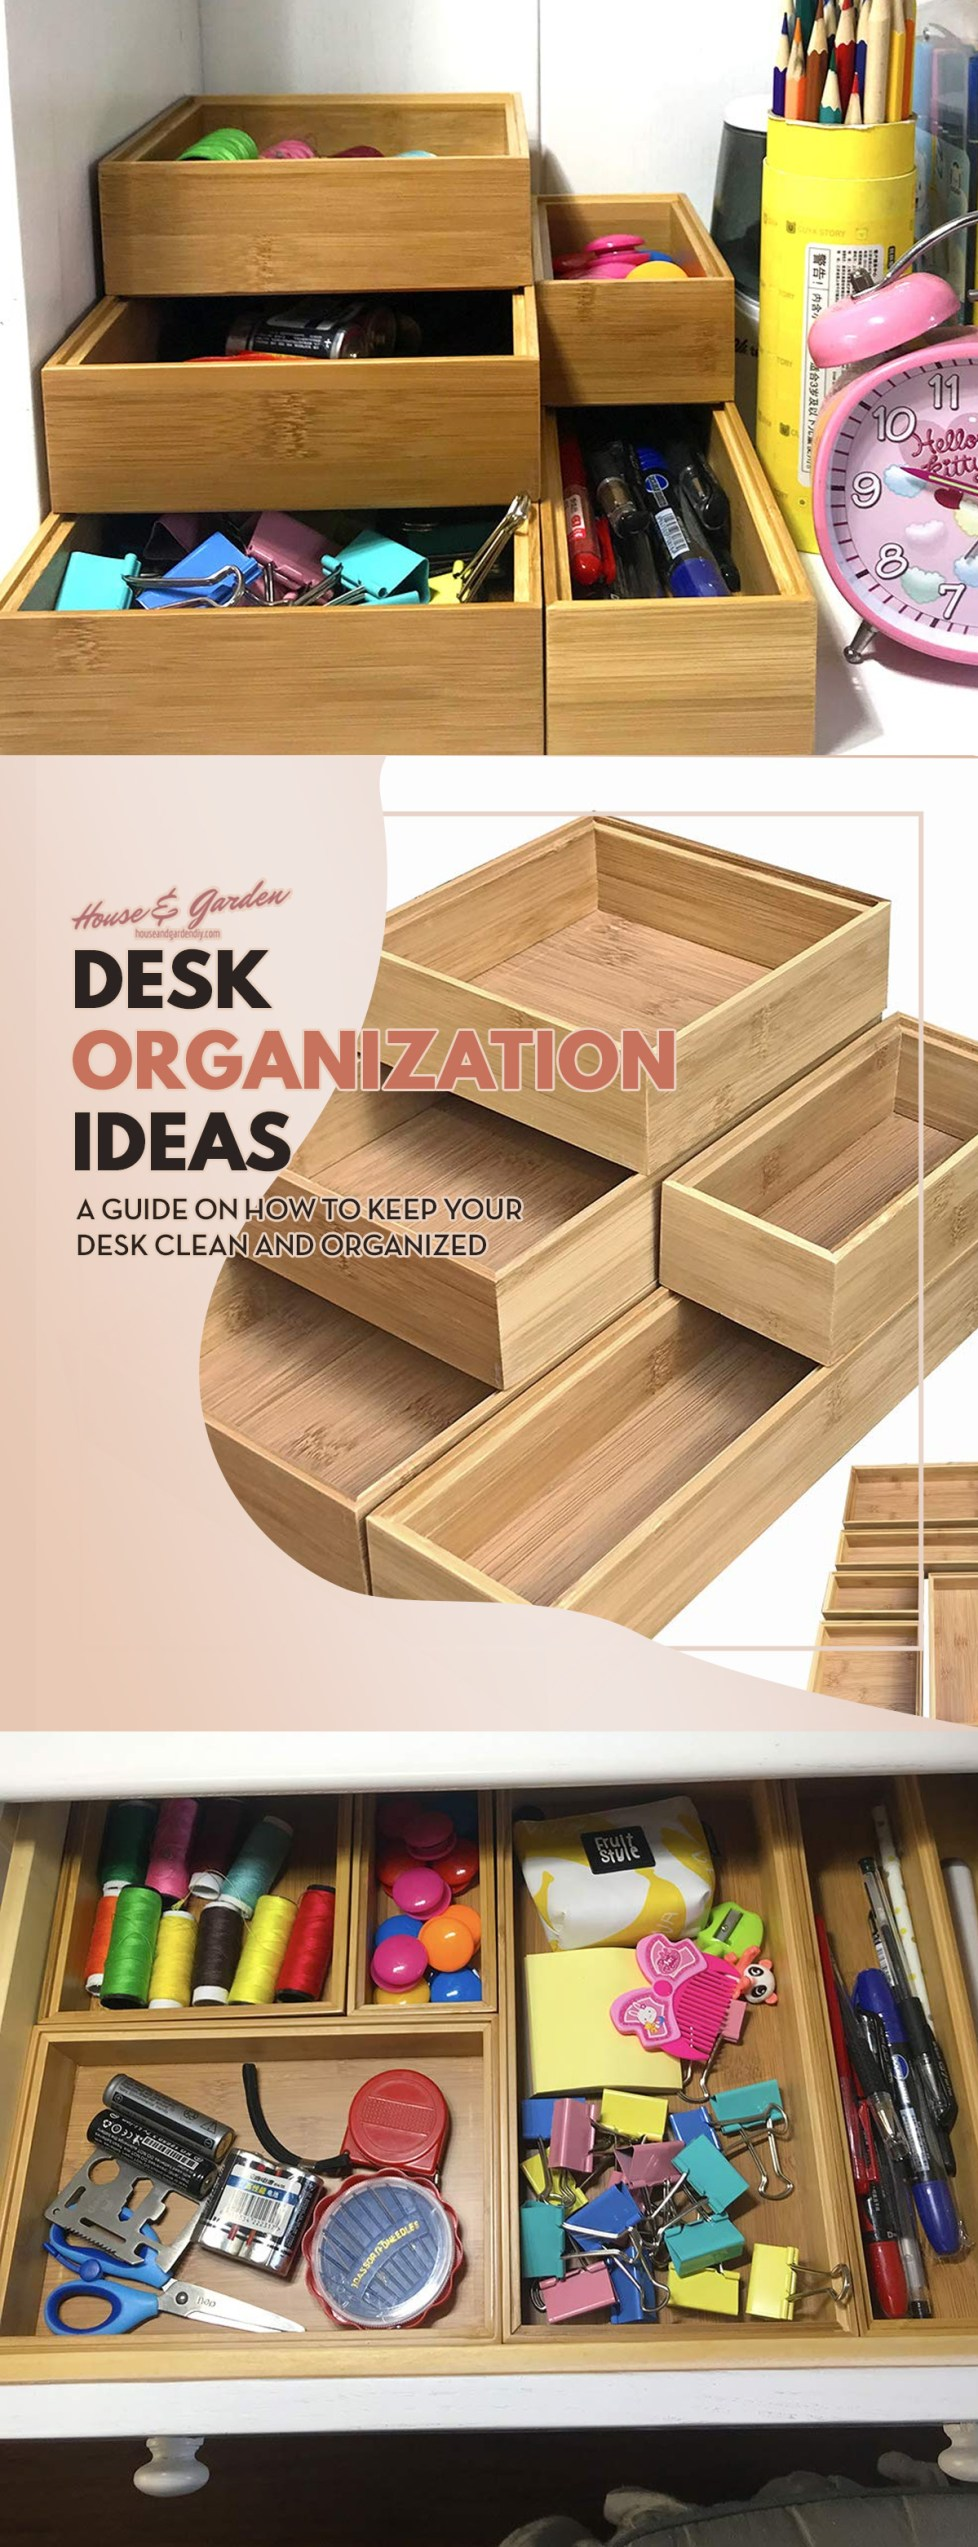 tips to organize your desk